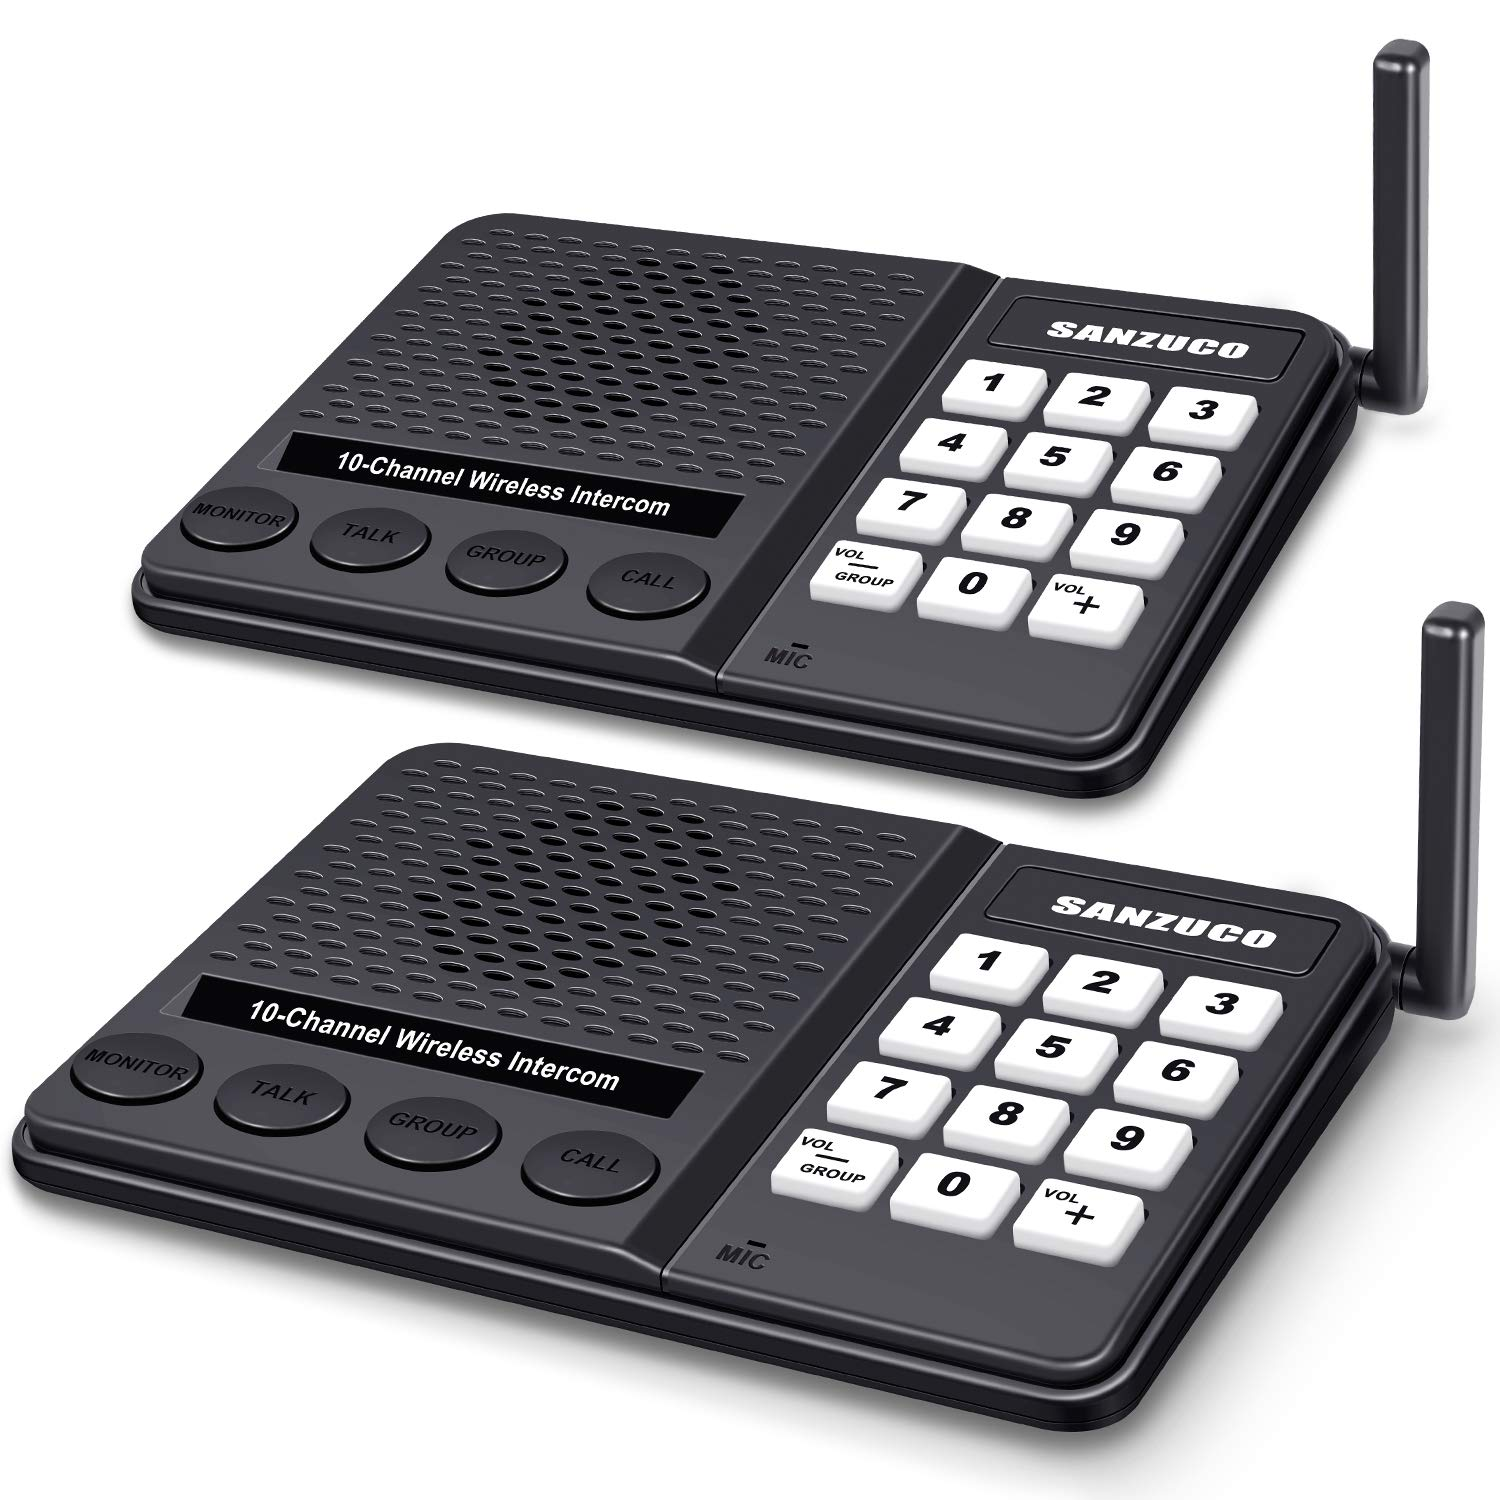 [New Version] Wireless Intercom System for Home - Long Range 1 Mile Home Intercom System with Radio Sound 10 Channel 3 Digital Code - Room to Room Intercoms Wireless for Business Office House (2 Pcs)